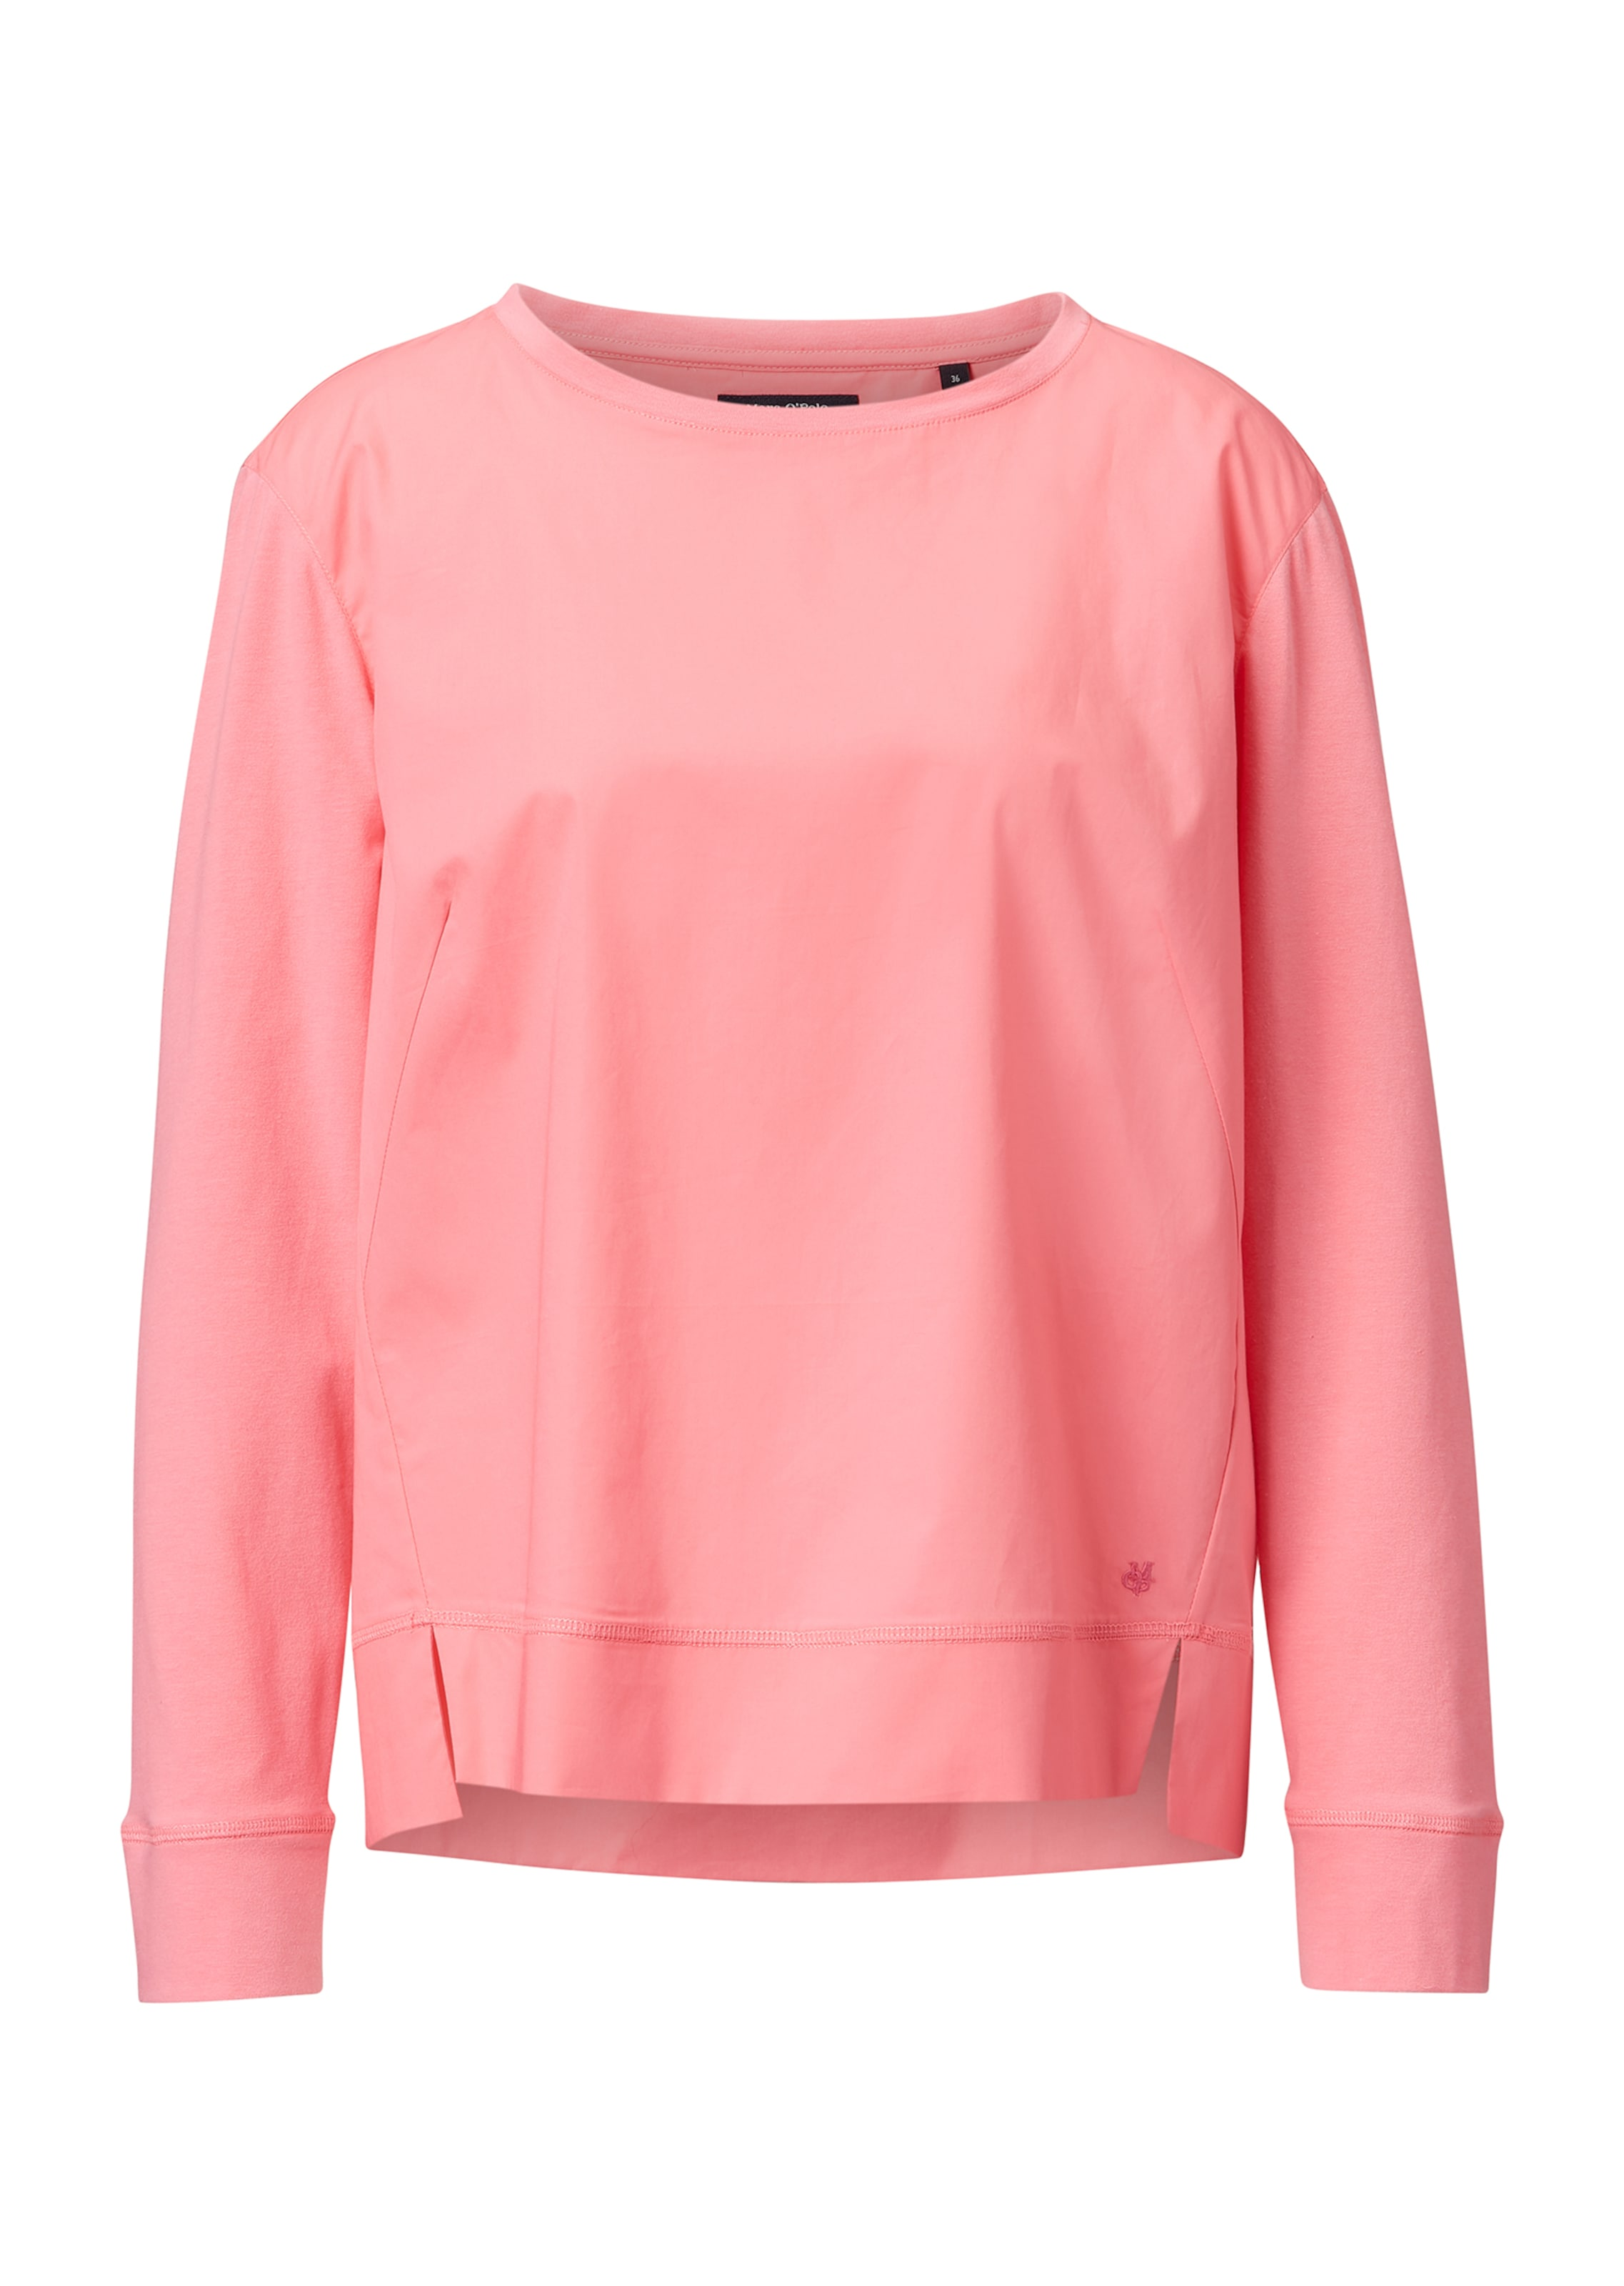 O'polo In O'polo Marc Bluse Marc Hellpink Marc Bluse Hellpink In 1KTFlJc